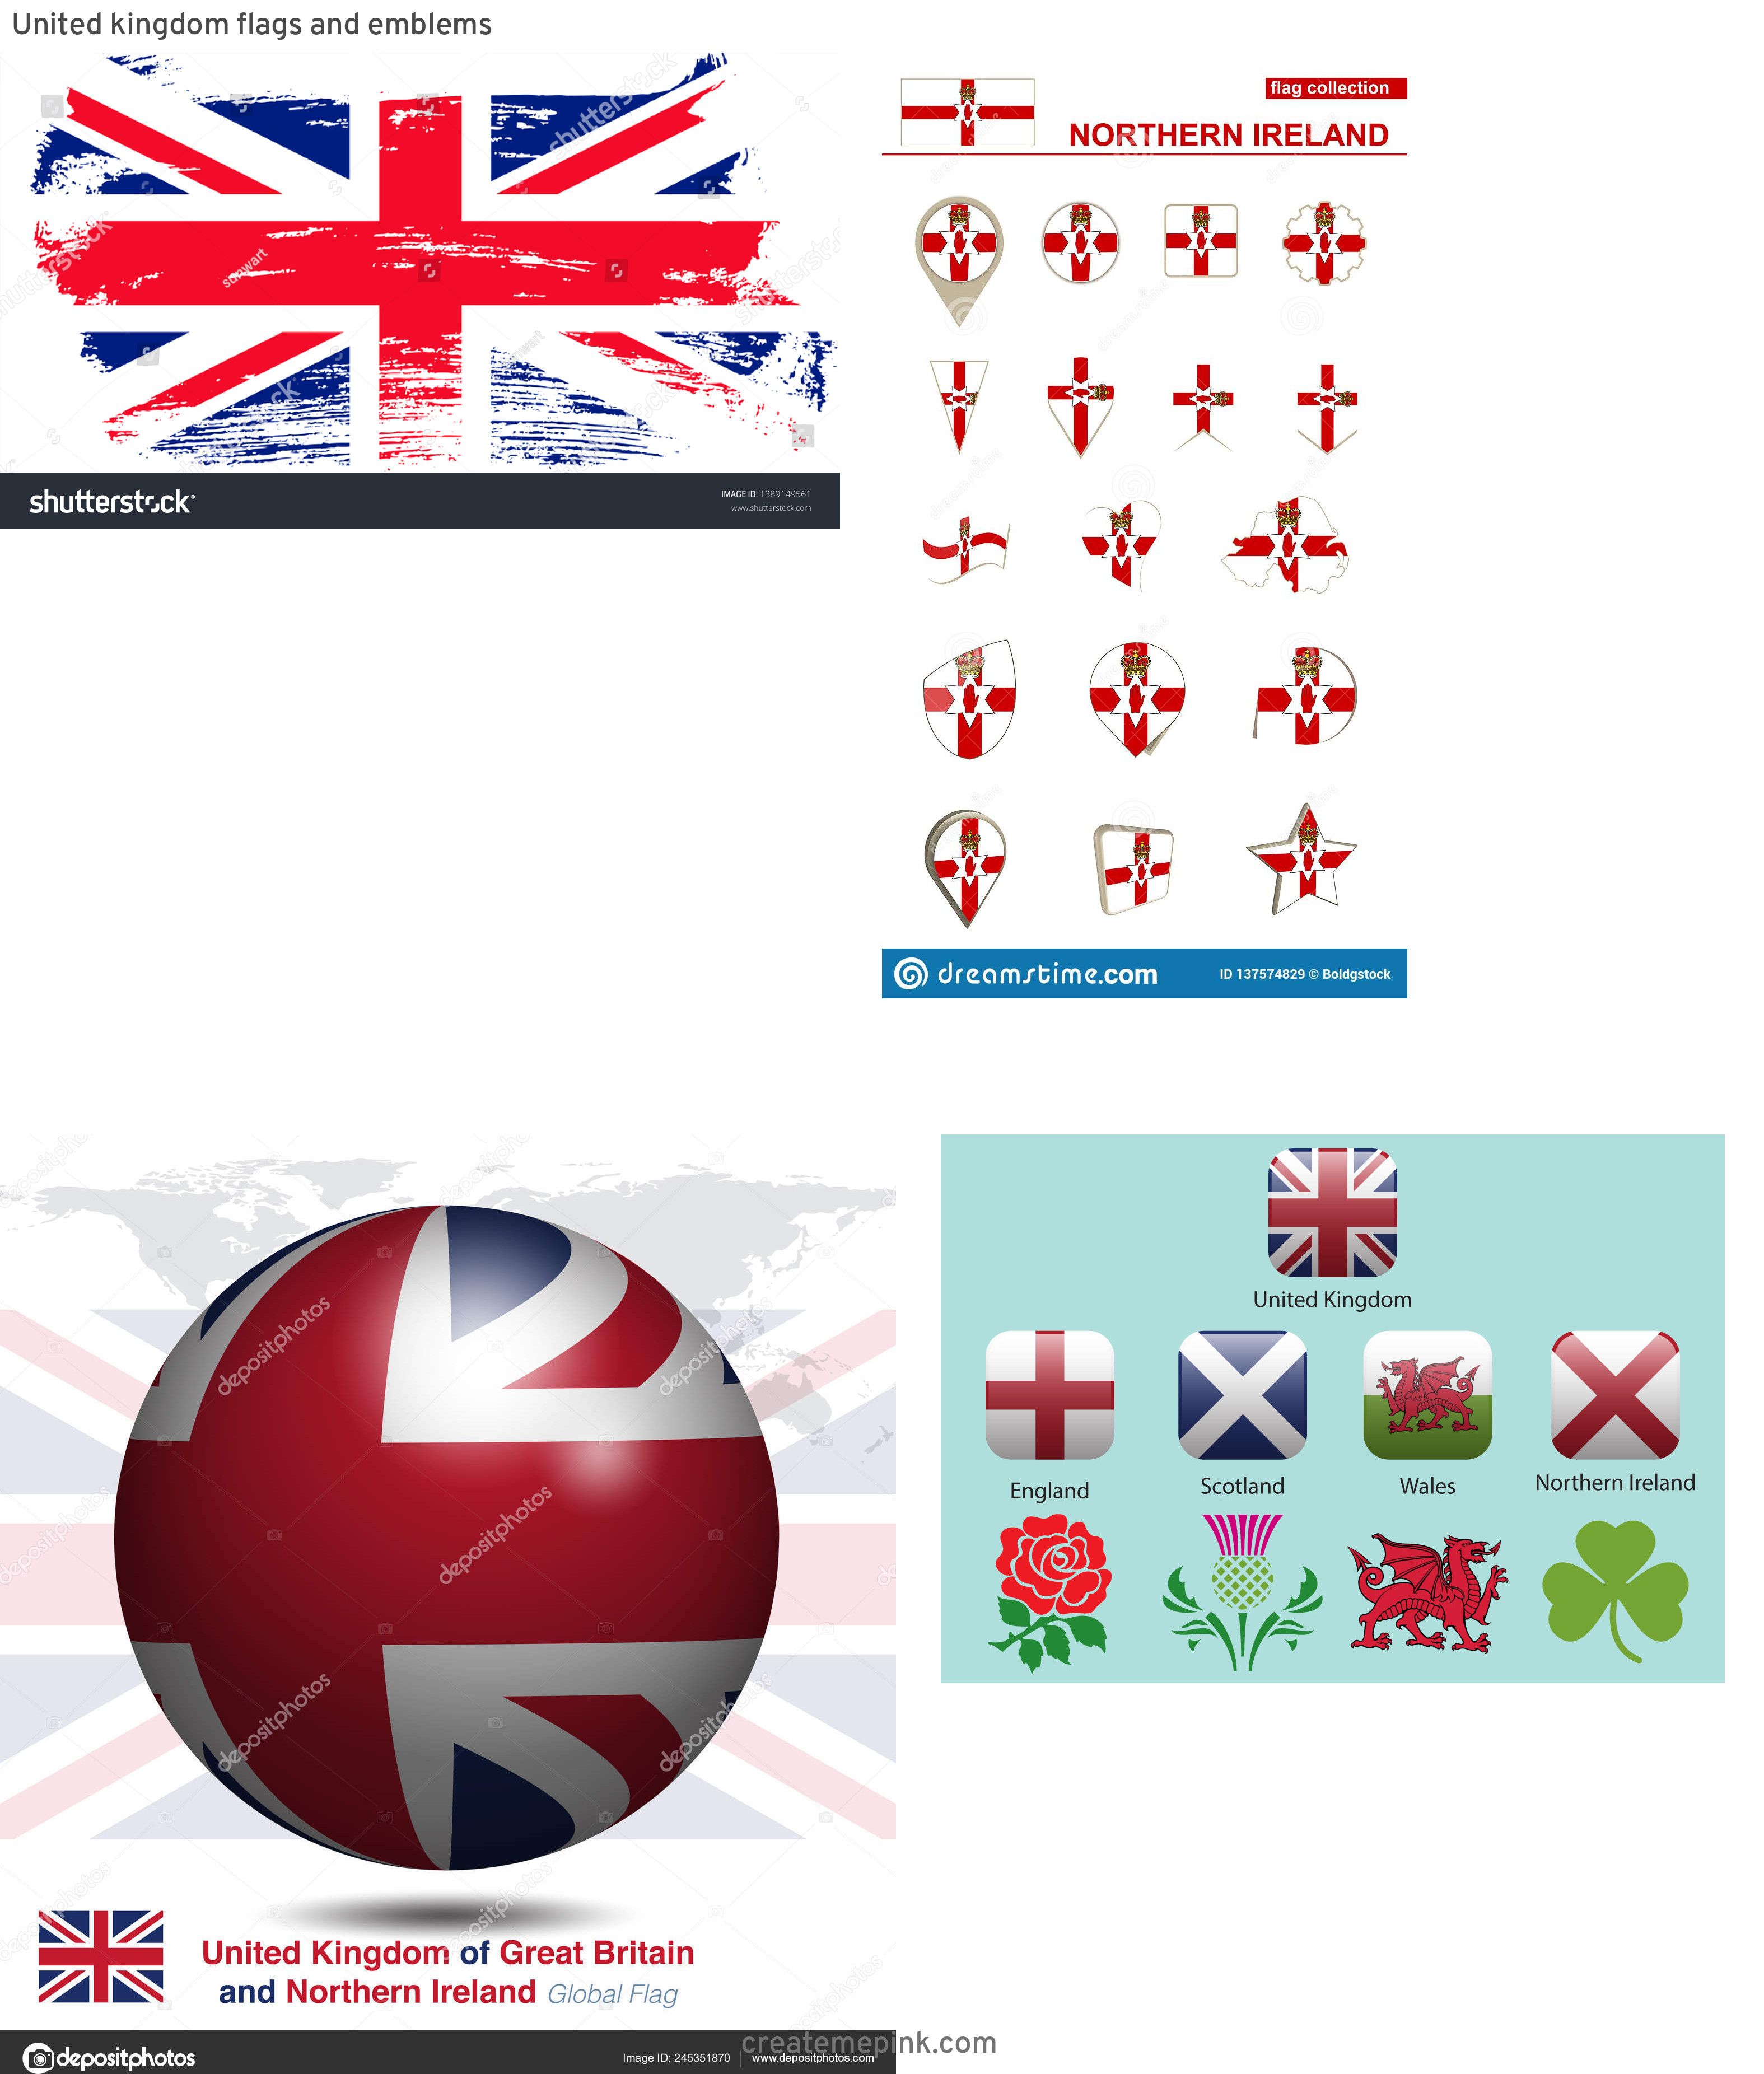 Northern Ireland Flag Vector: United Kingdom Flags And Emblems